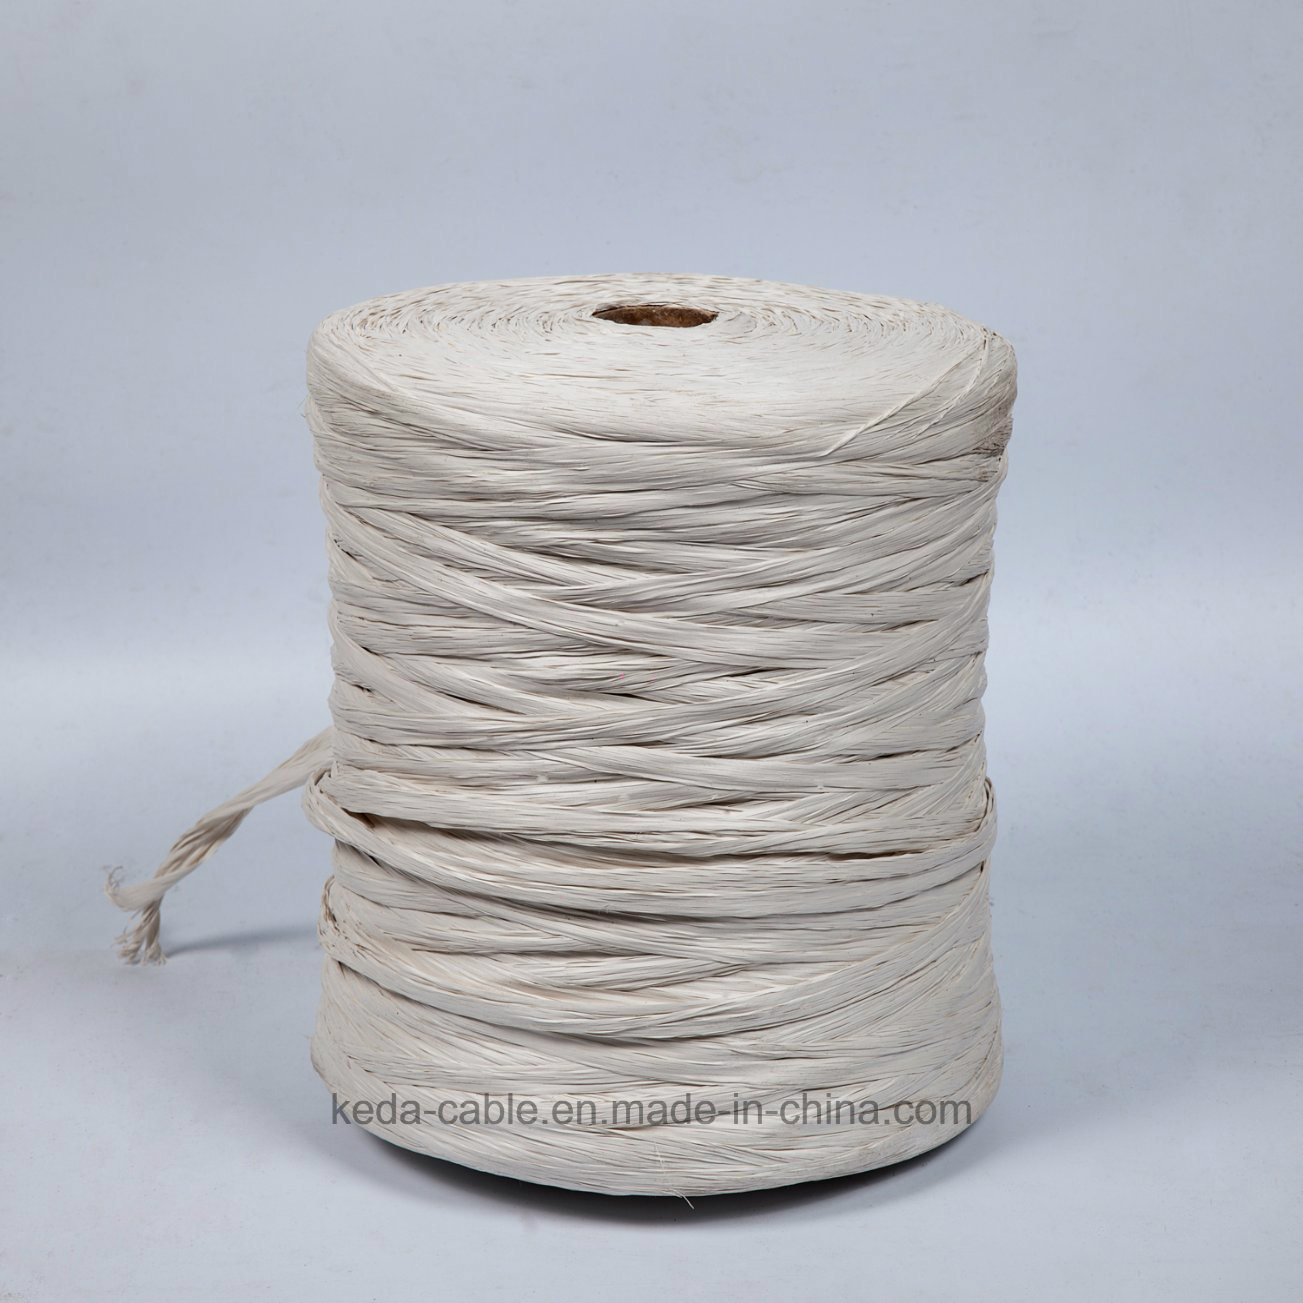 100% PP Filling Rope for Cable (12)